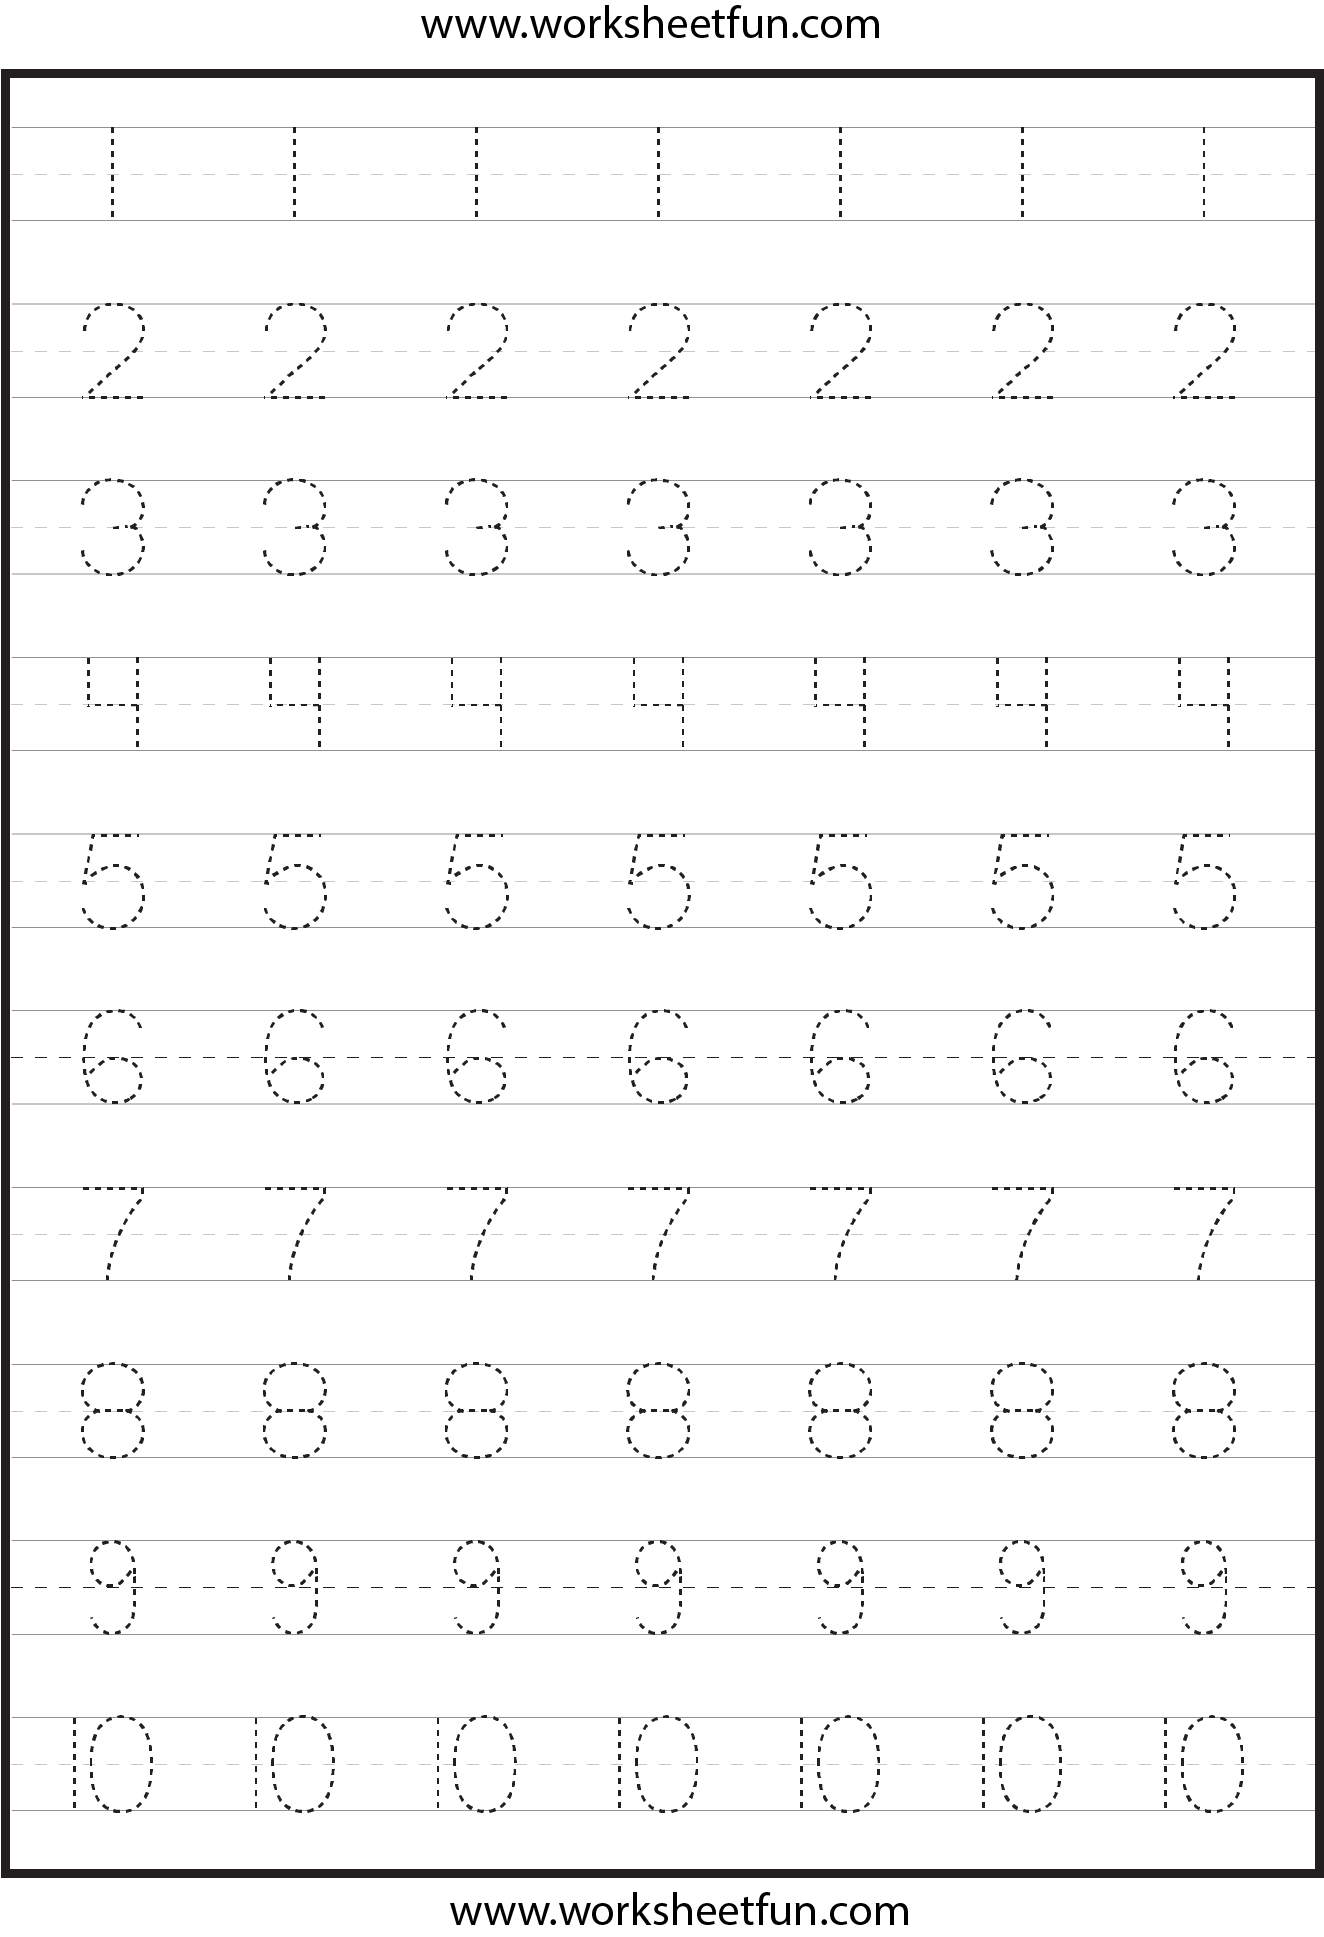 worksheet Kindergarten Tracing Worksheets number tracing worksheets for kindergarten 1 10 ten worksheets